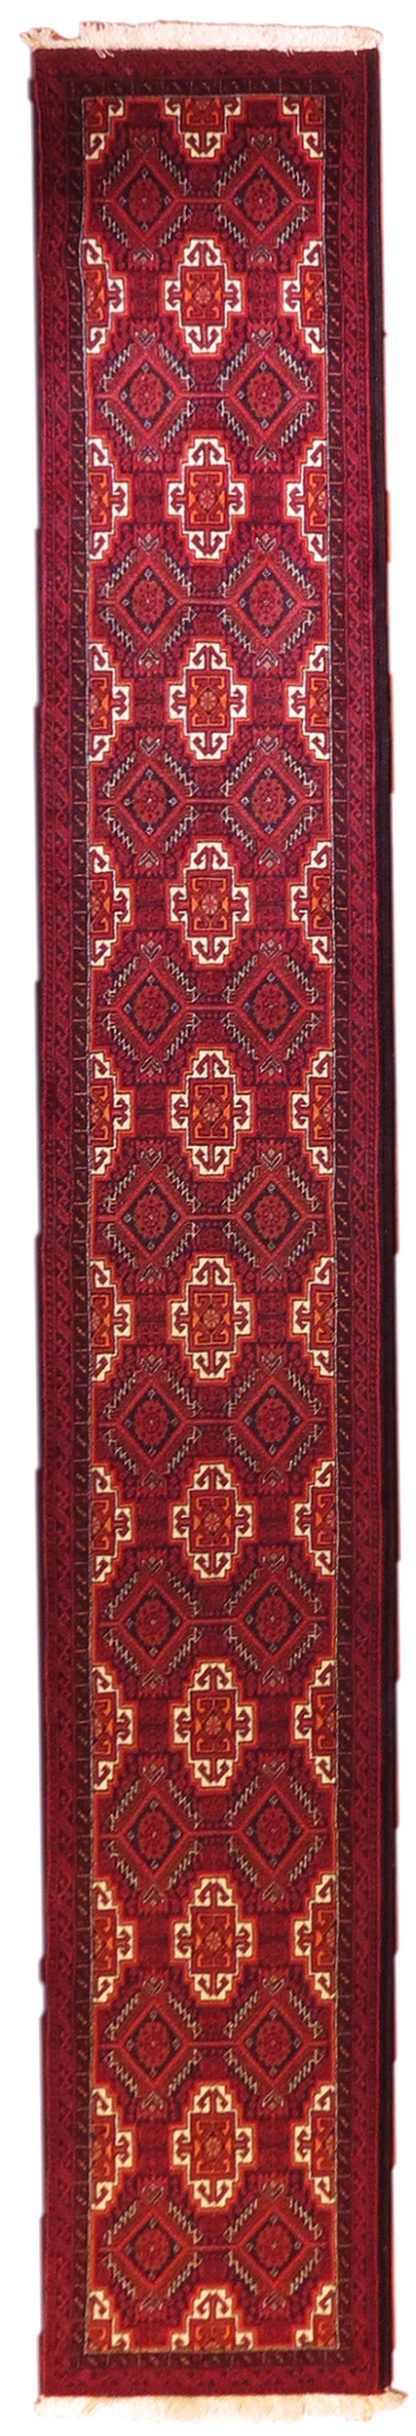 Persian Baluch Runner 2x12 Red Brown Wool Area Rug